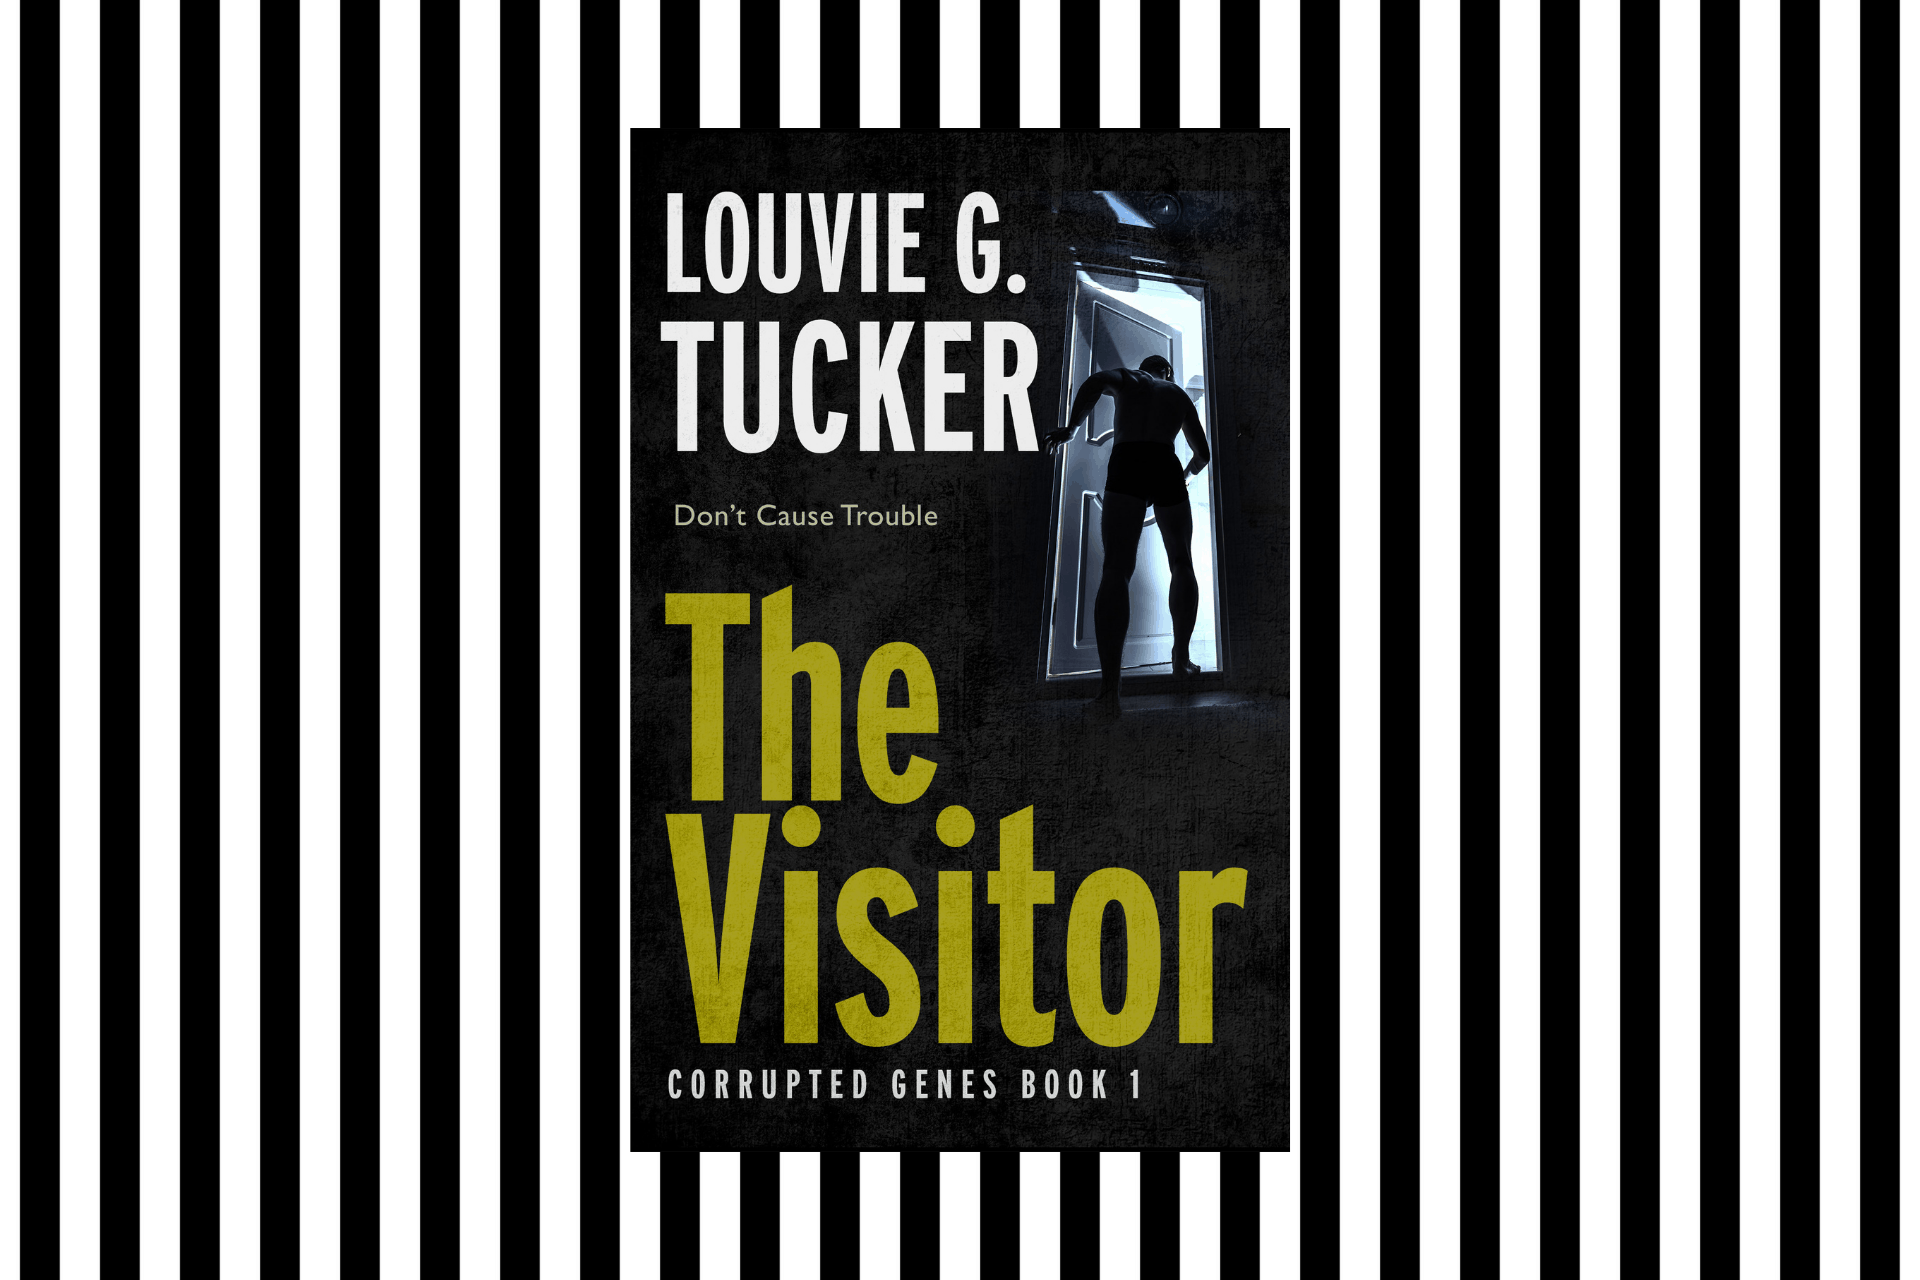 The cover of The Visitor by Louvie G Tucker